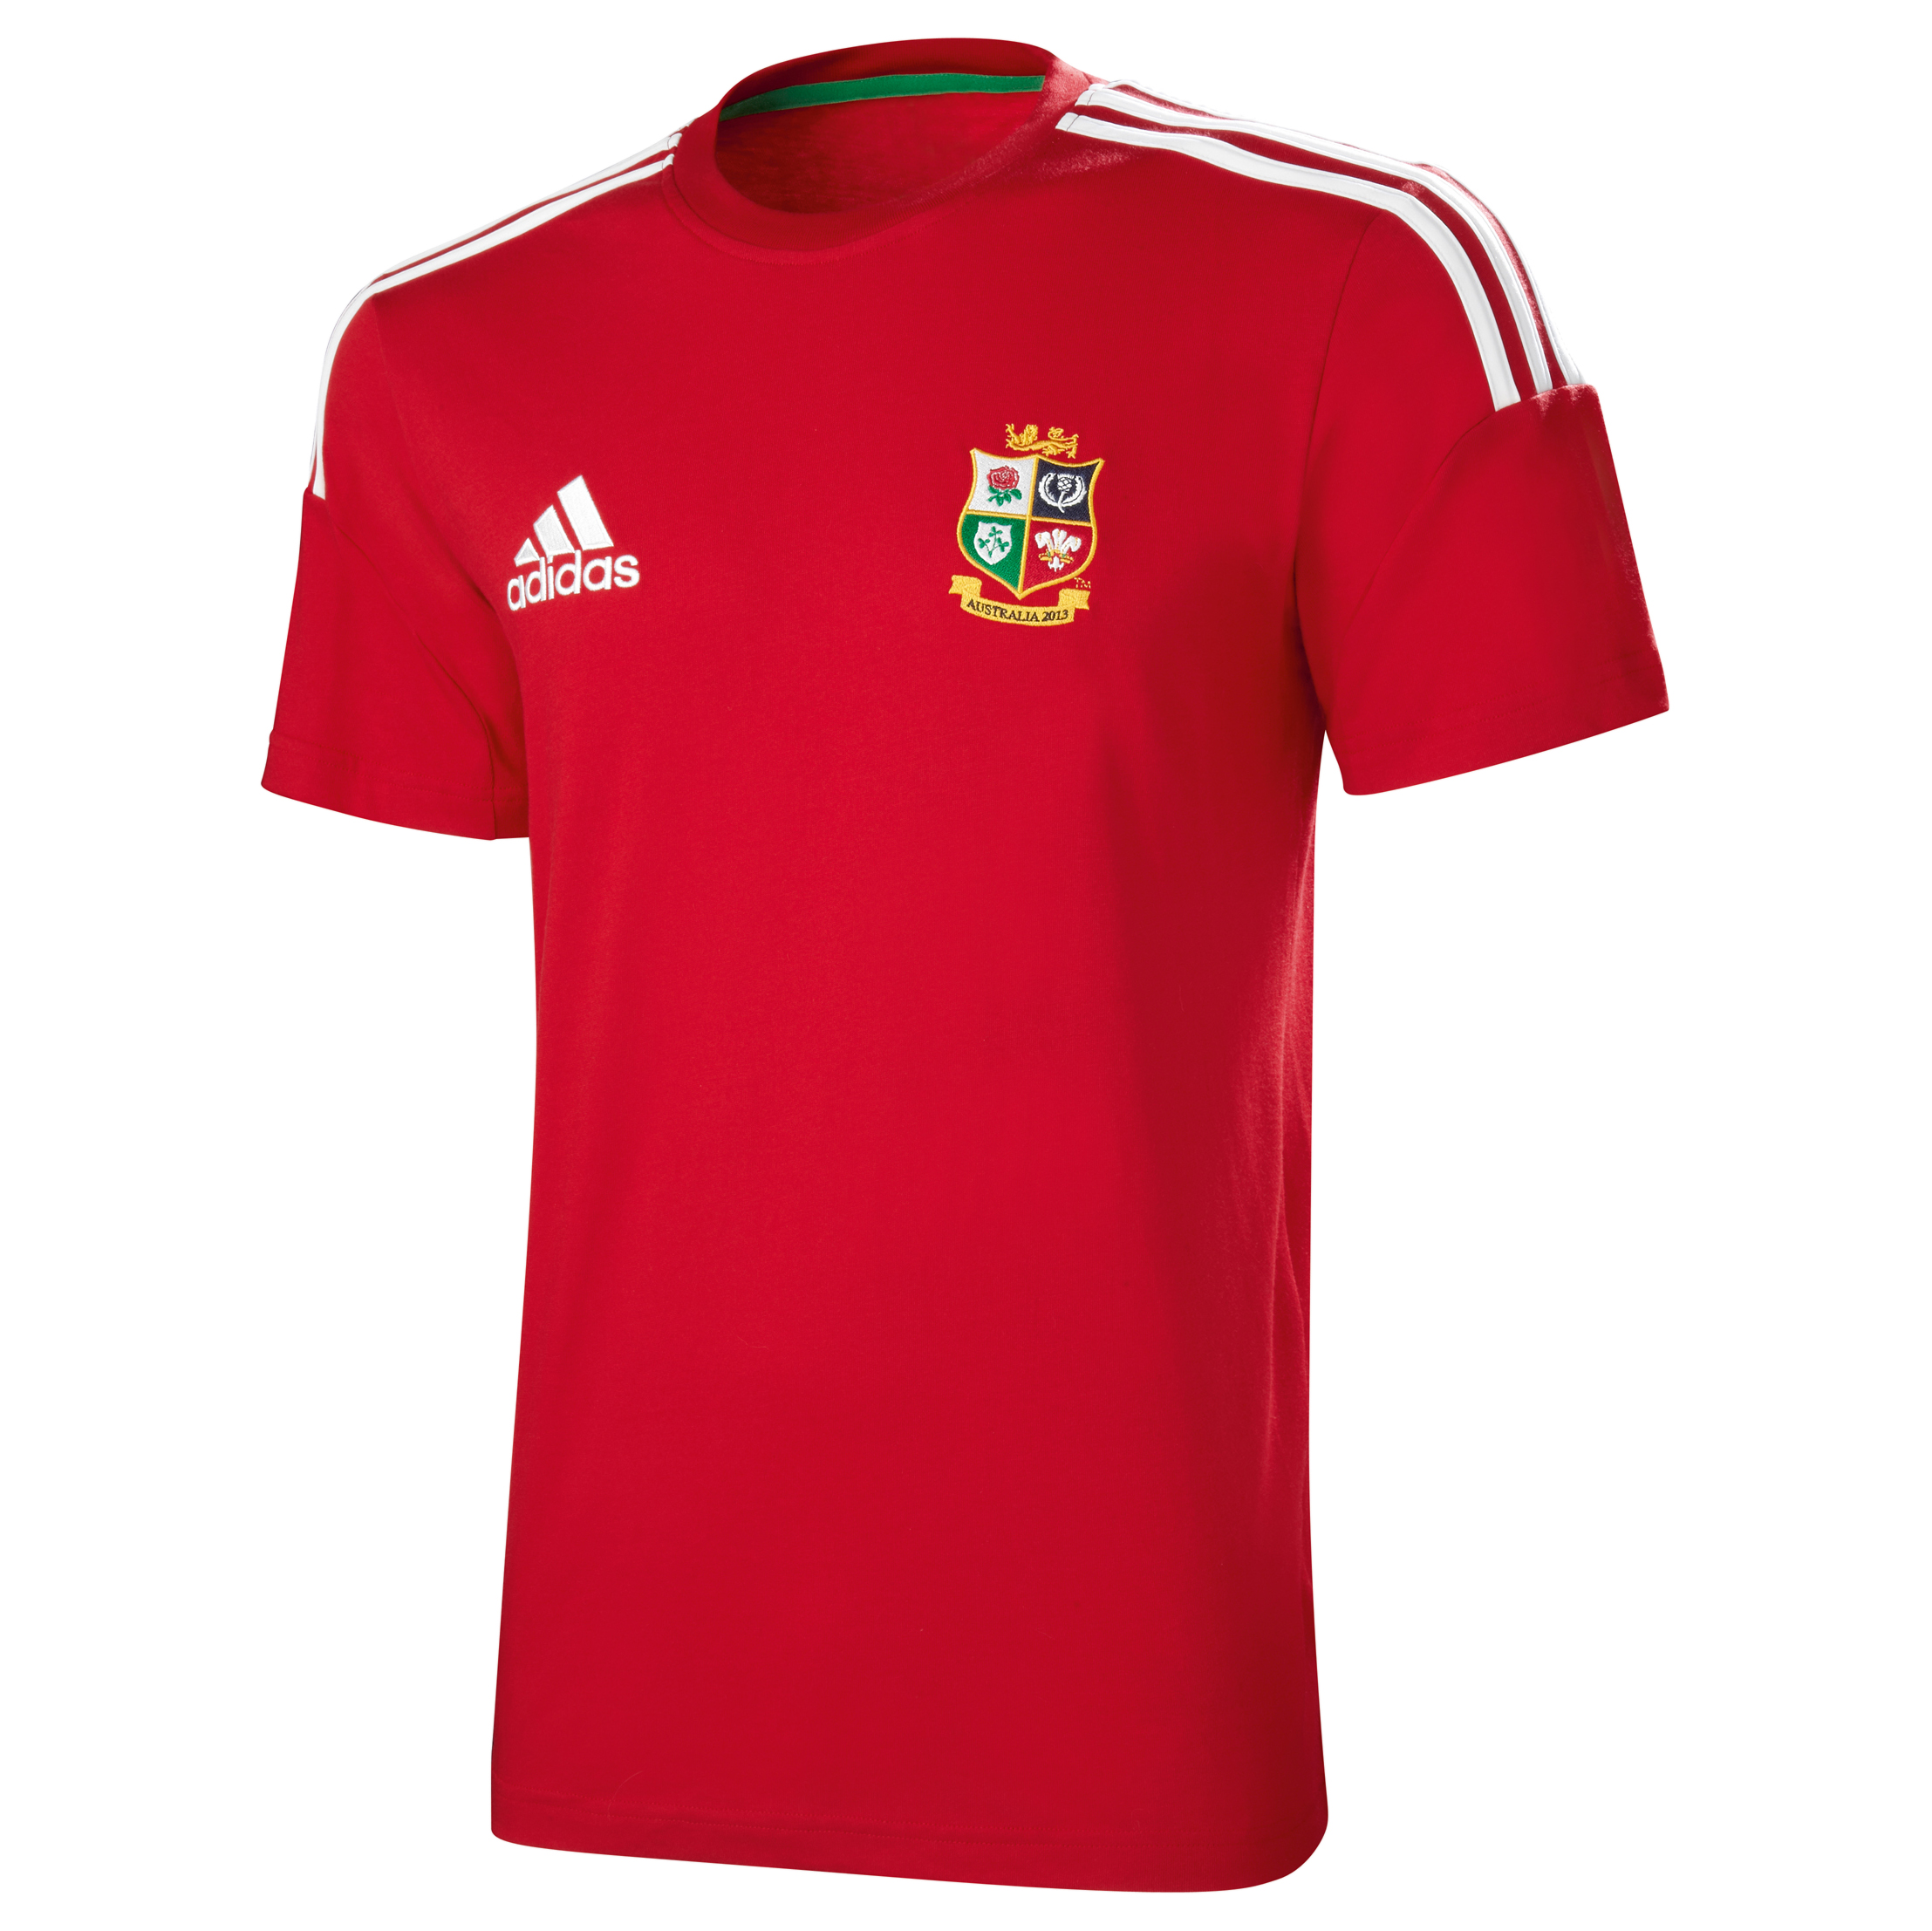 adidas British and Irish Lions T-Shirt - University Red/White